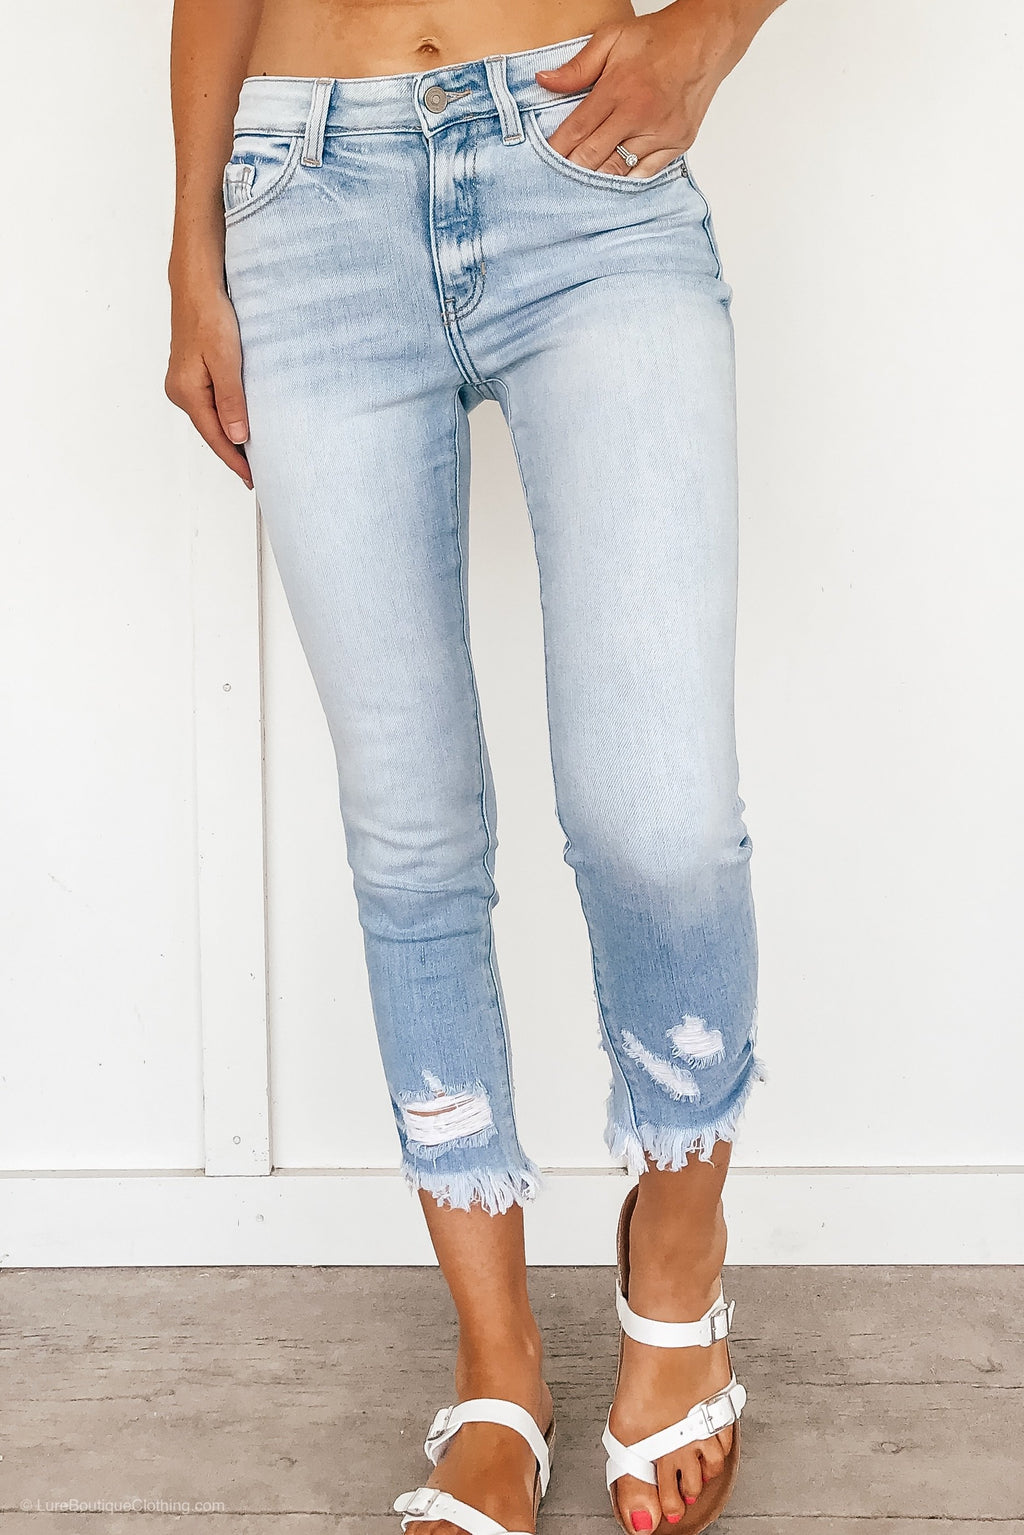 High Rise Light Washed KanCan Skinny Jeans